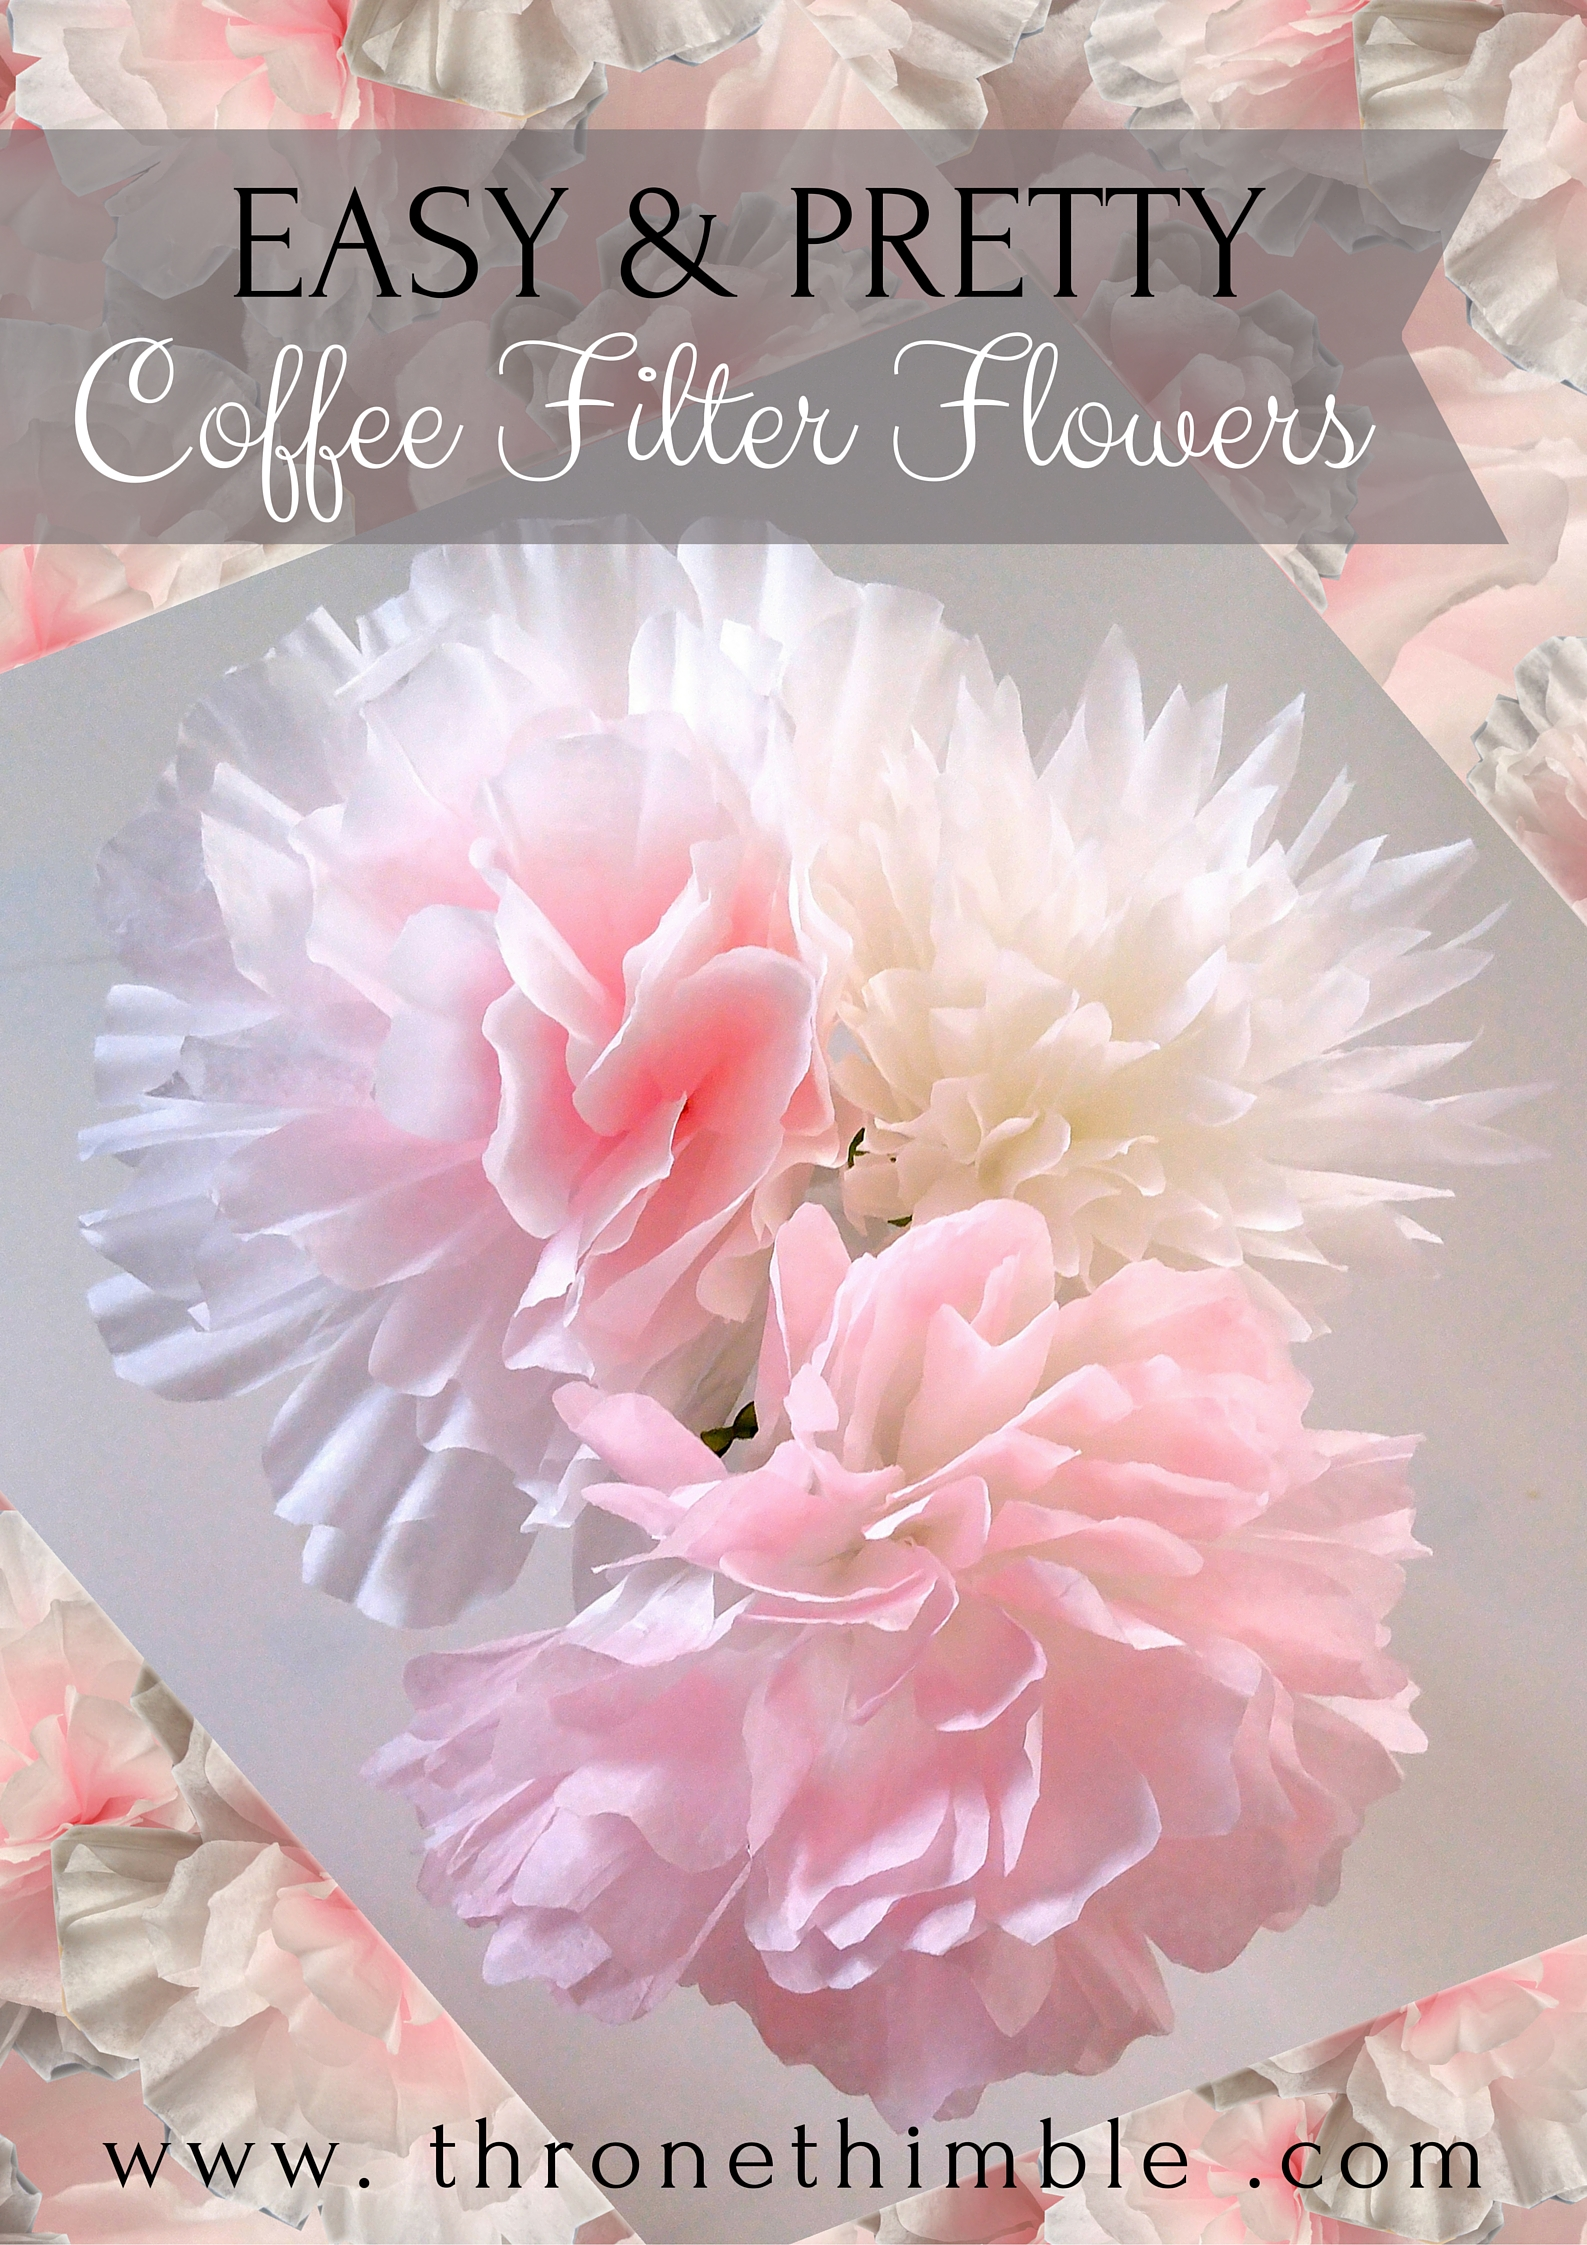 Coffee Filter Flowers Pin 2